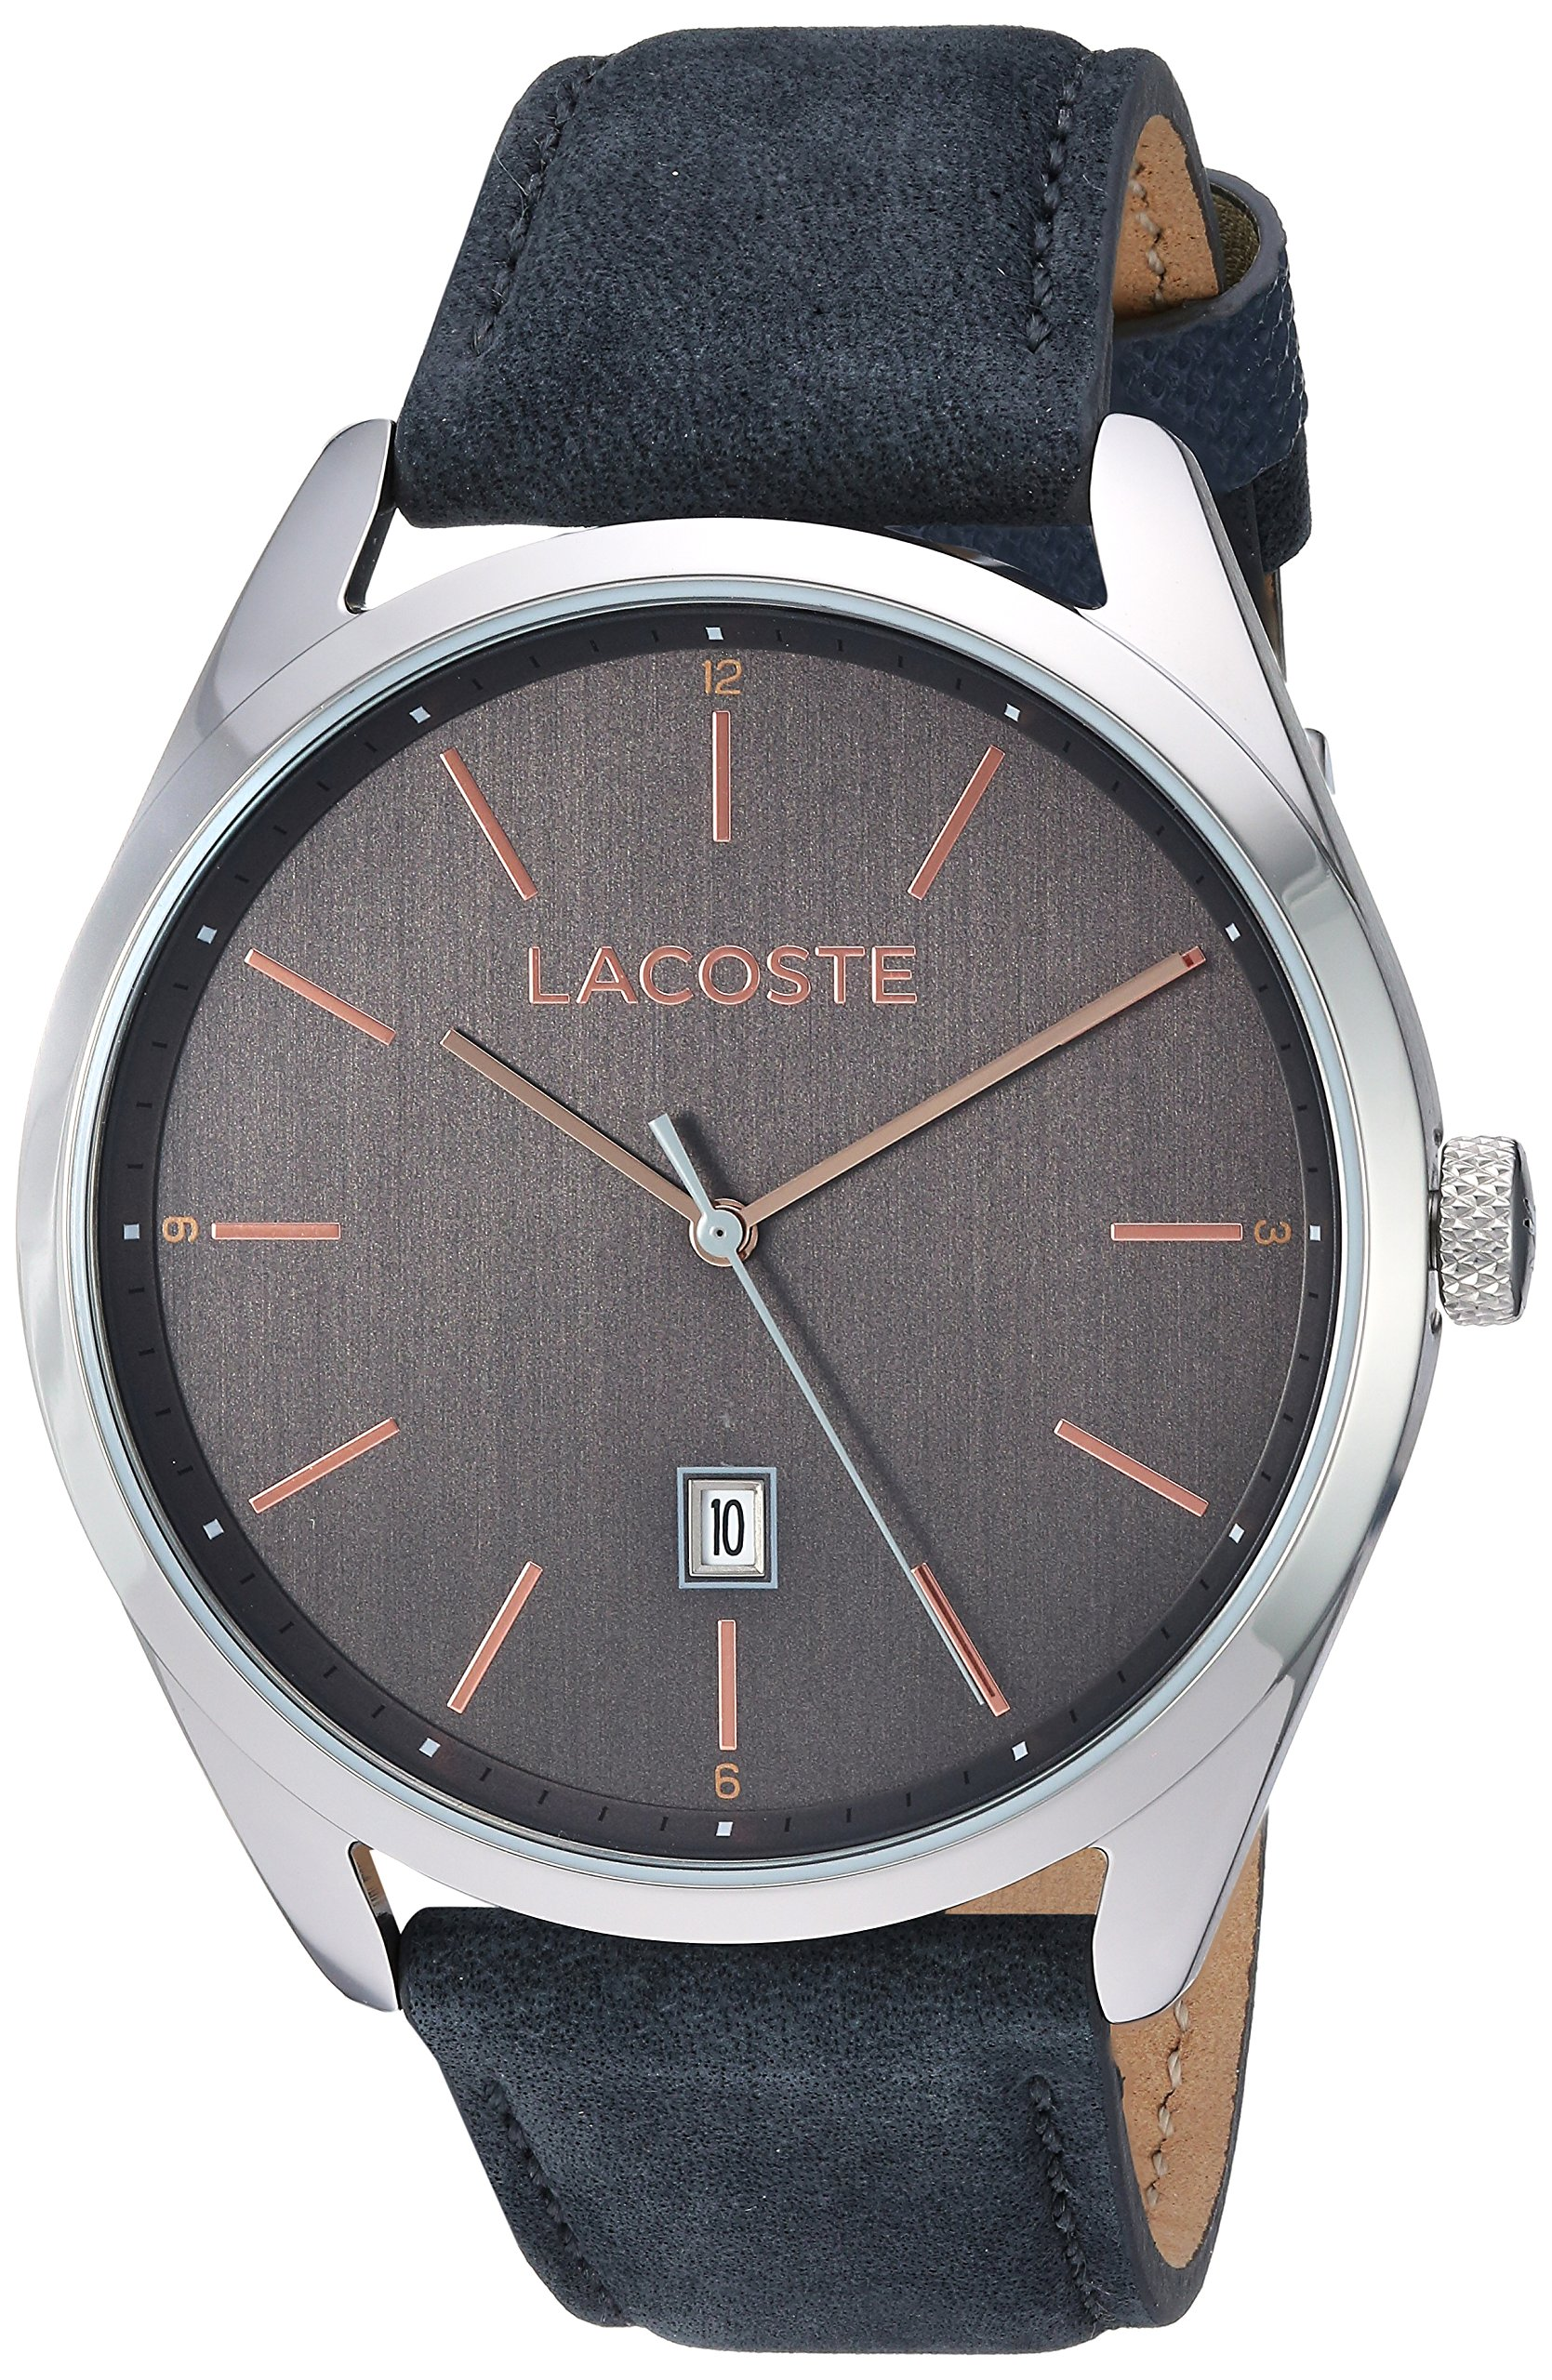 Lacoste Men's San Diego Stainless Steel Quartz Watch with Suede Strap, Grey, 22 (Model: 2010911) by Lacoste